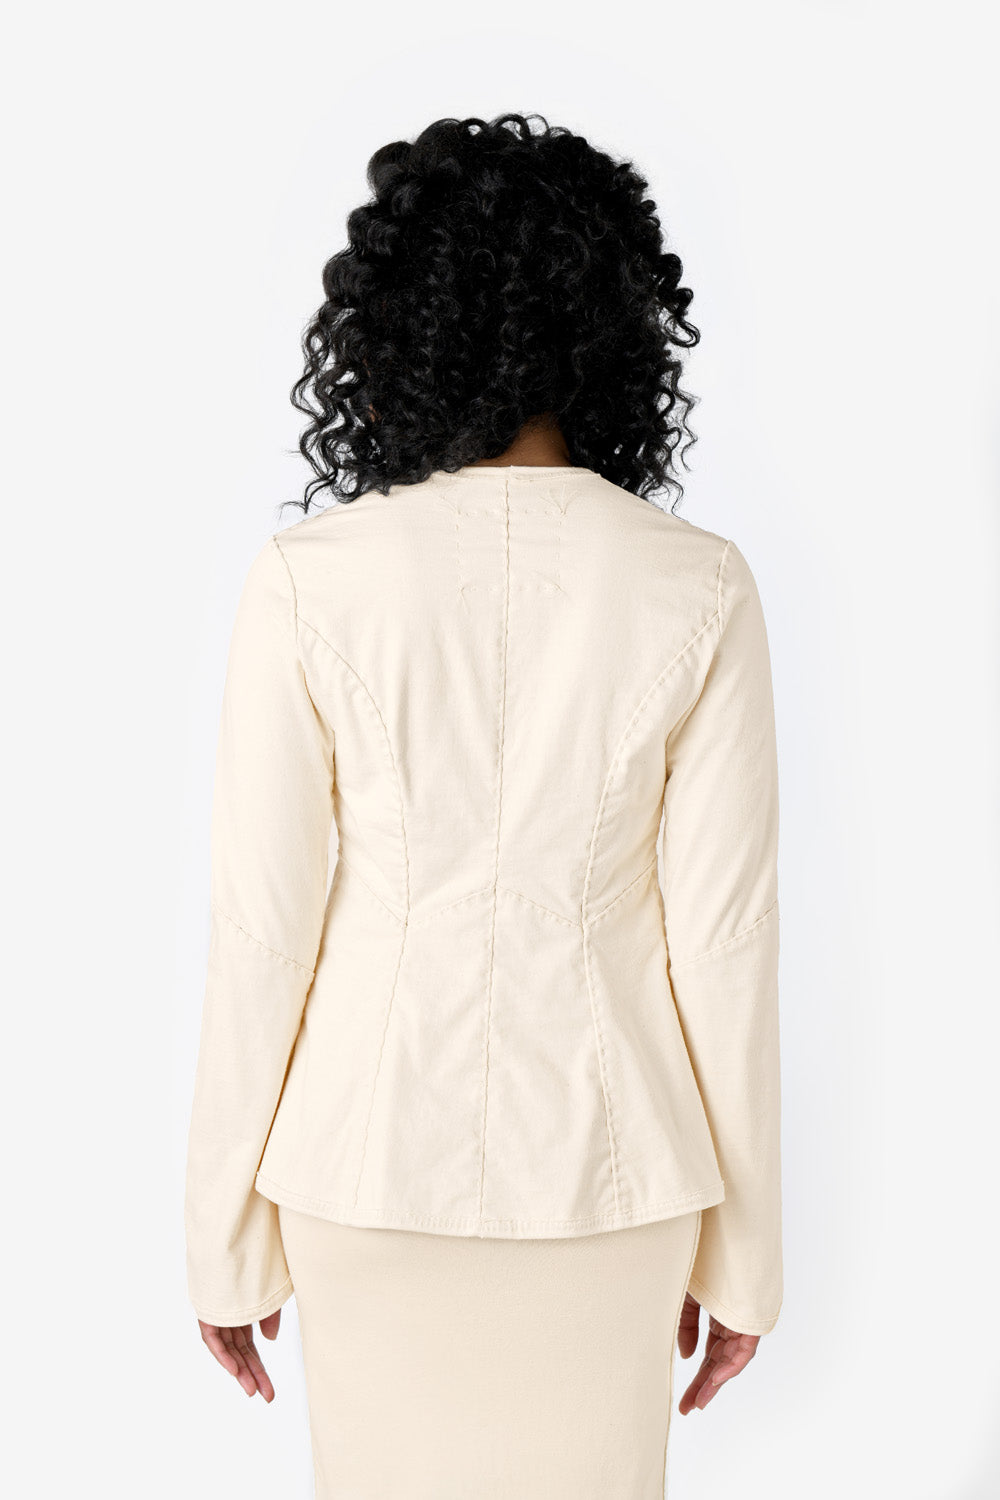 alabama chanin cerie cardigan top with long sleeves in natural on model